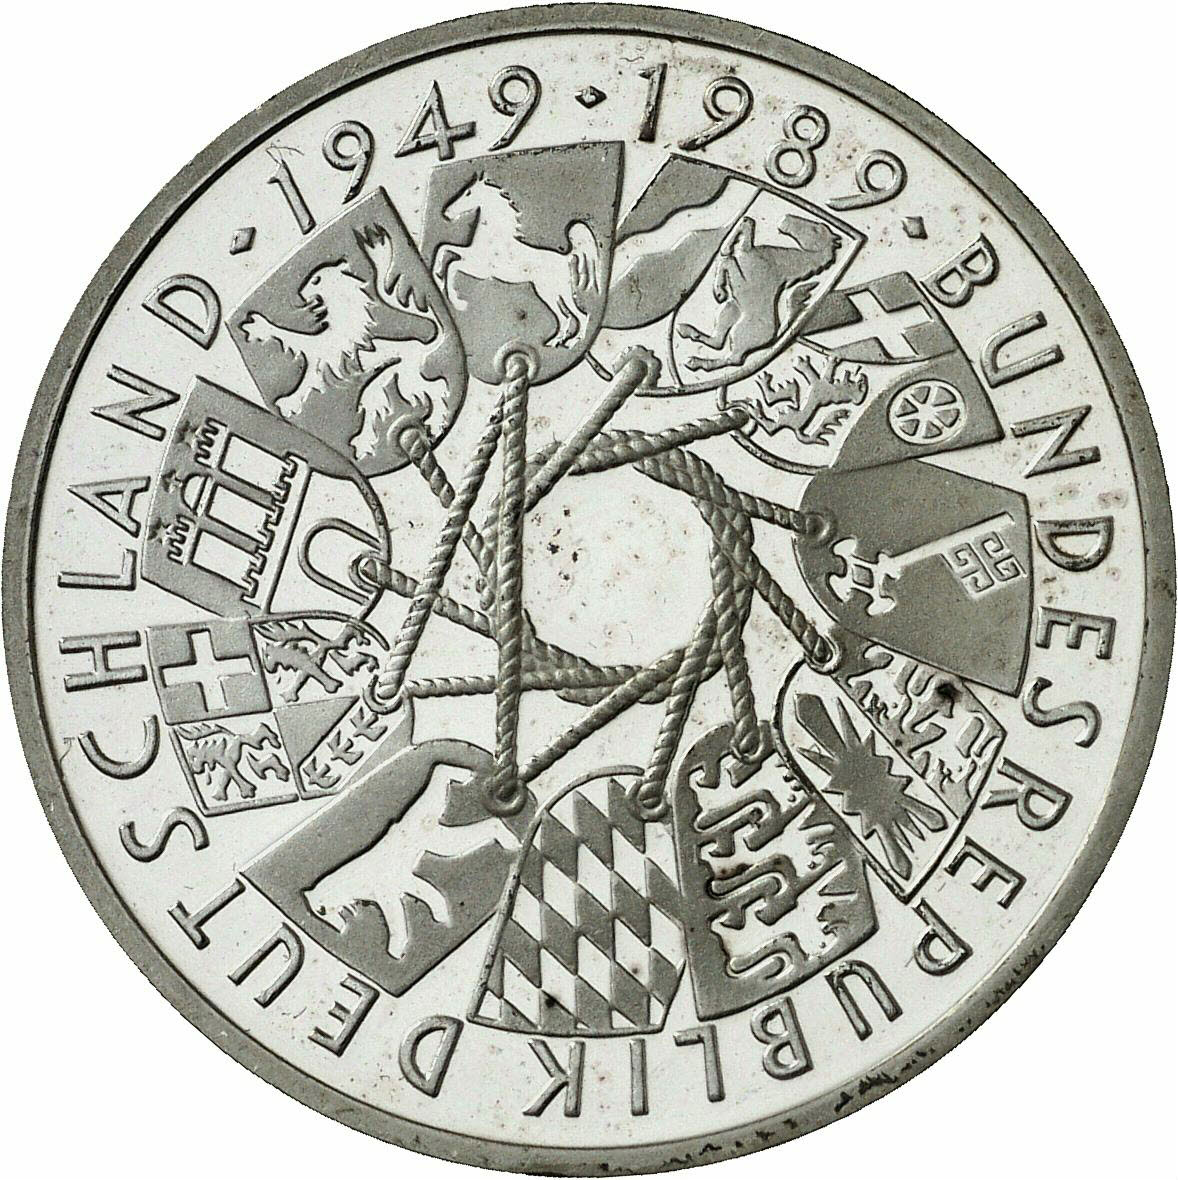 DE 10 Deutsche Mark 1989 G